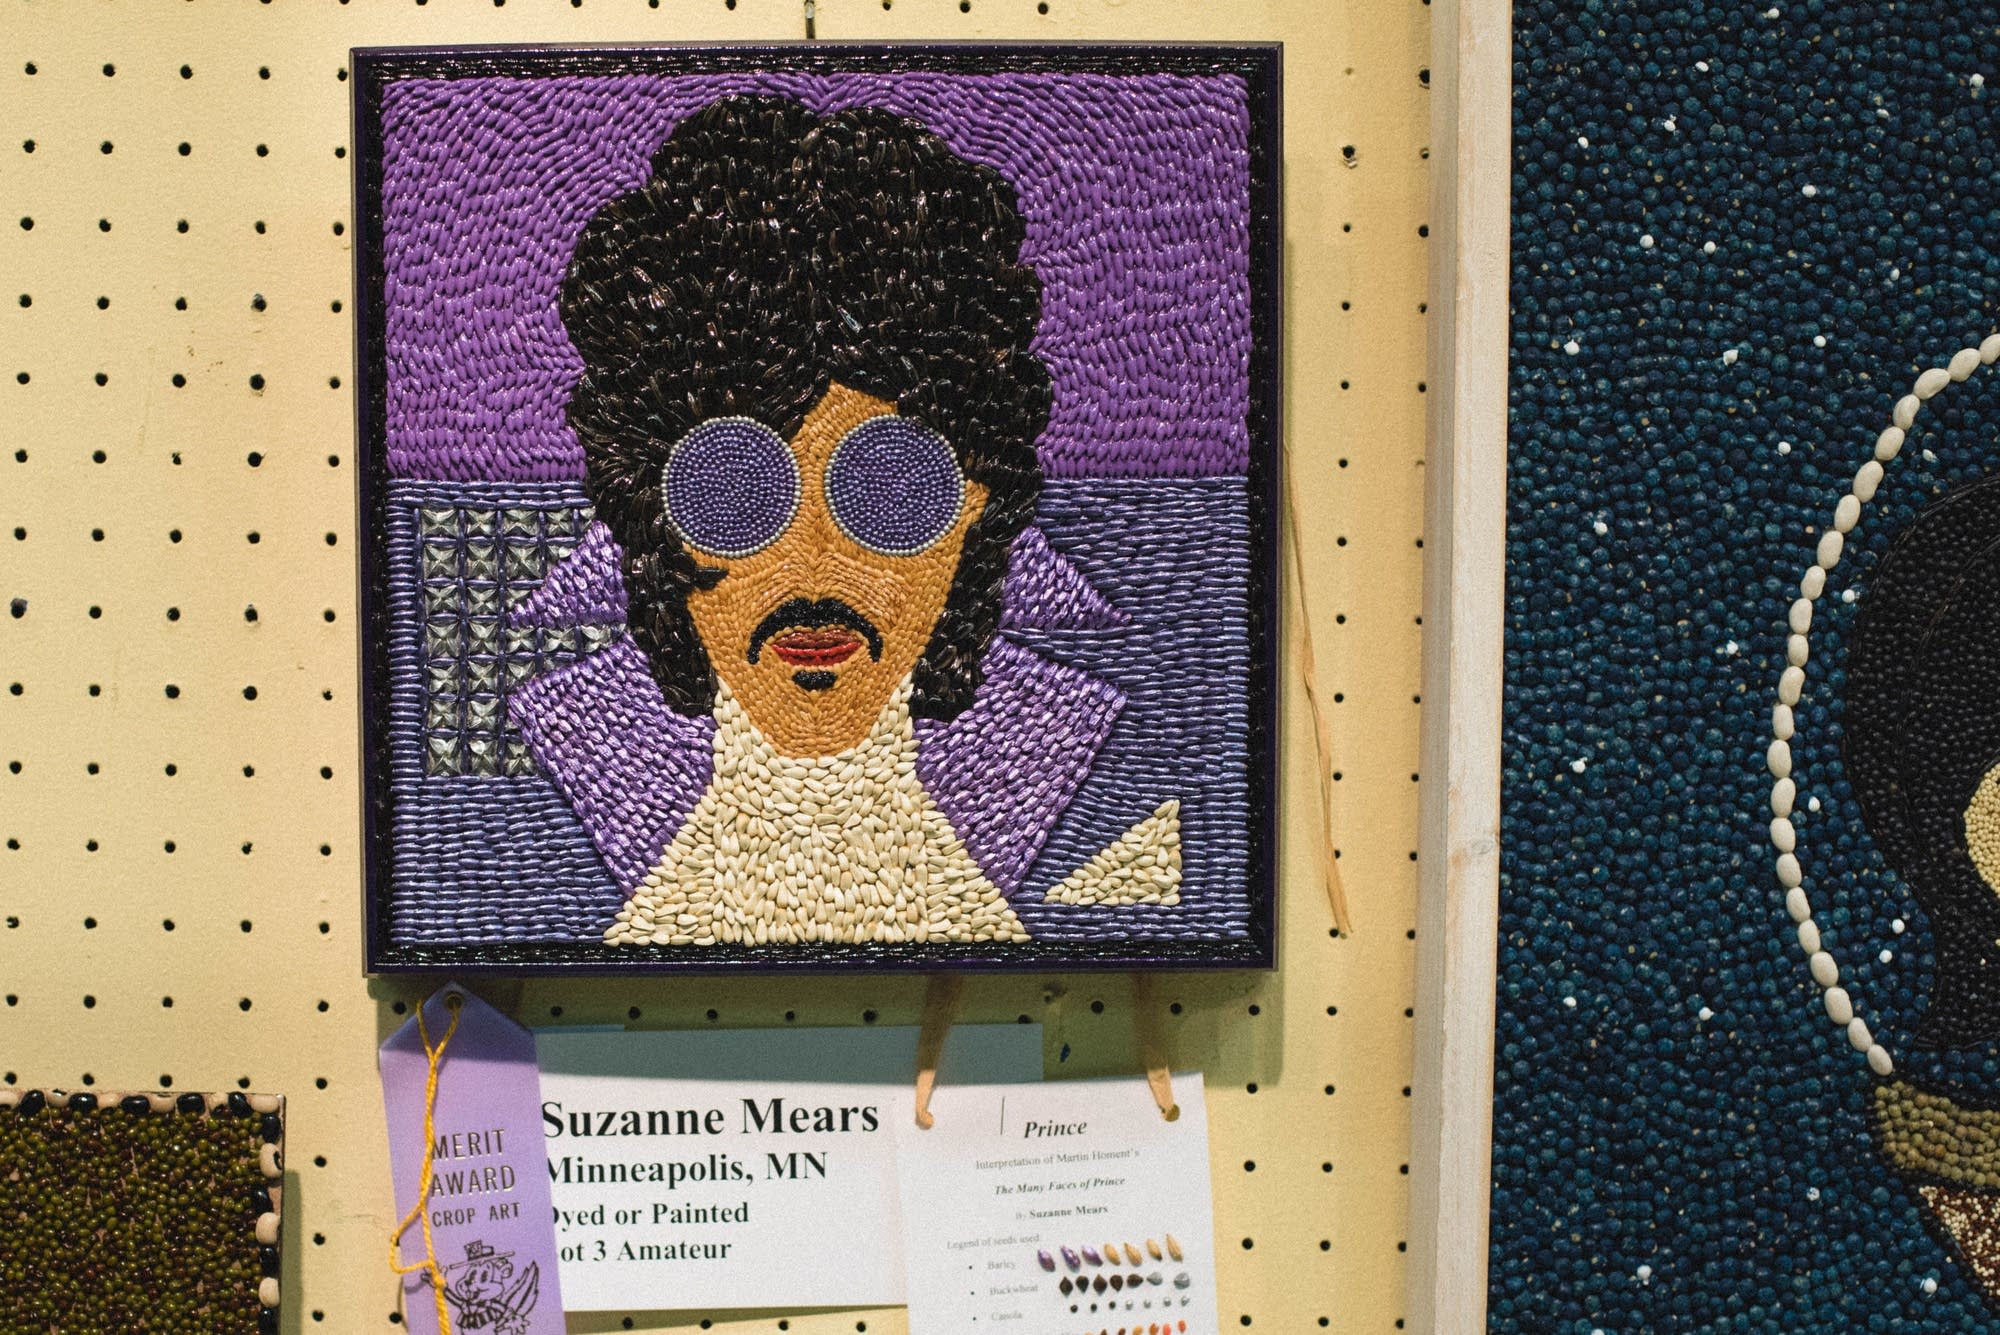 A selection of 2017 Minnesota State Fair seed art